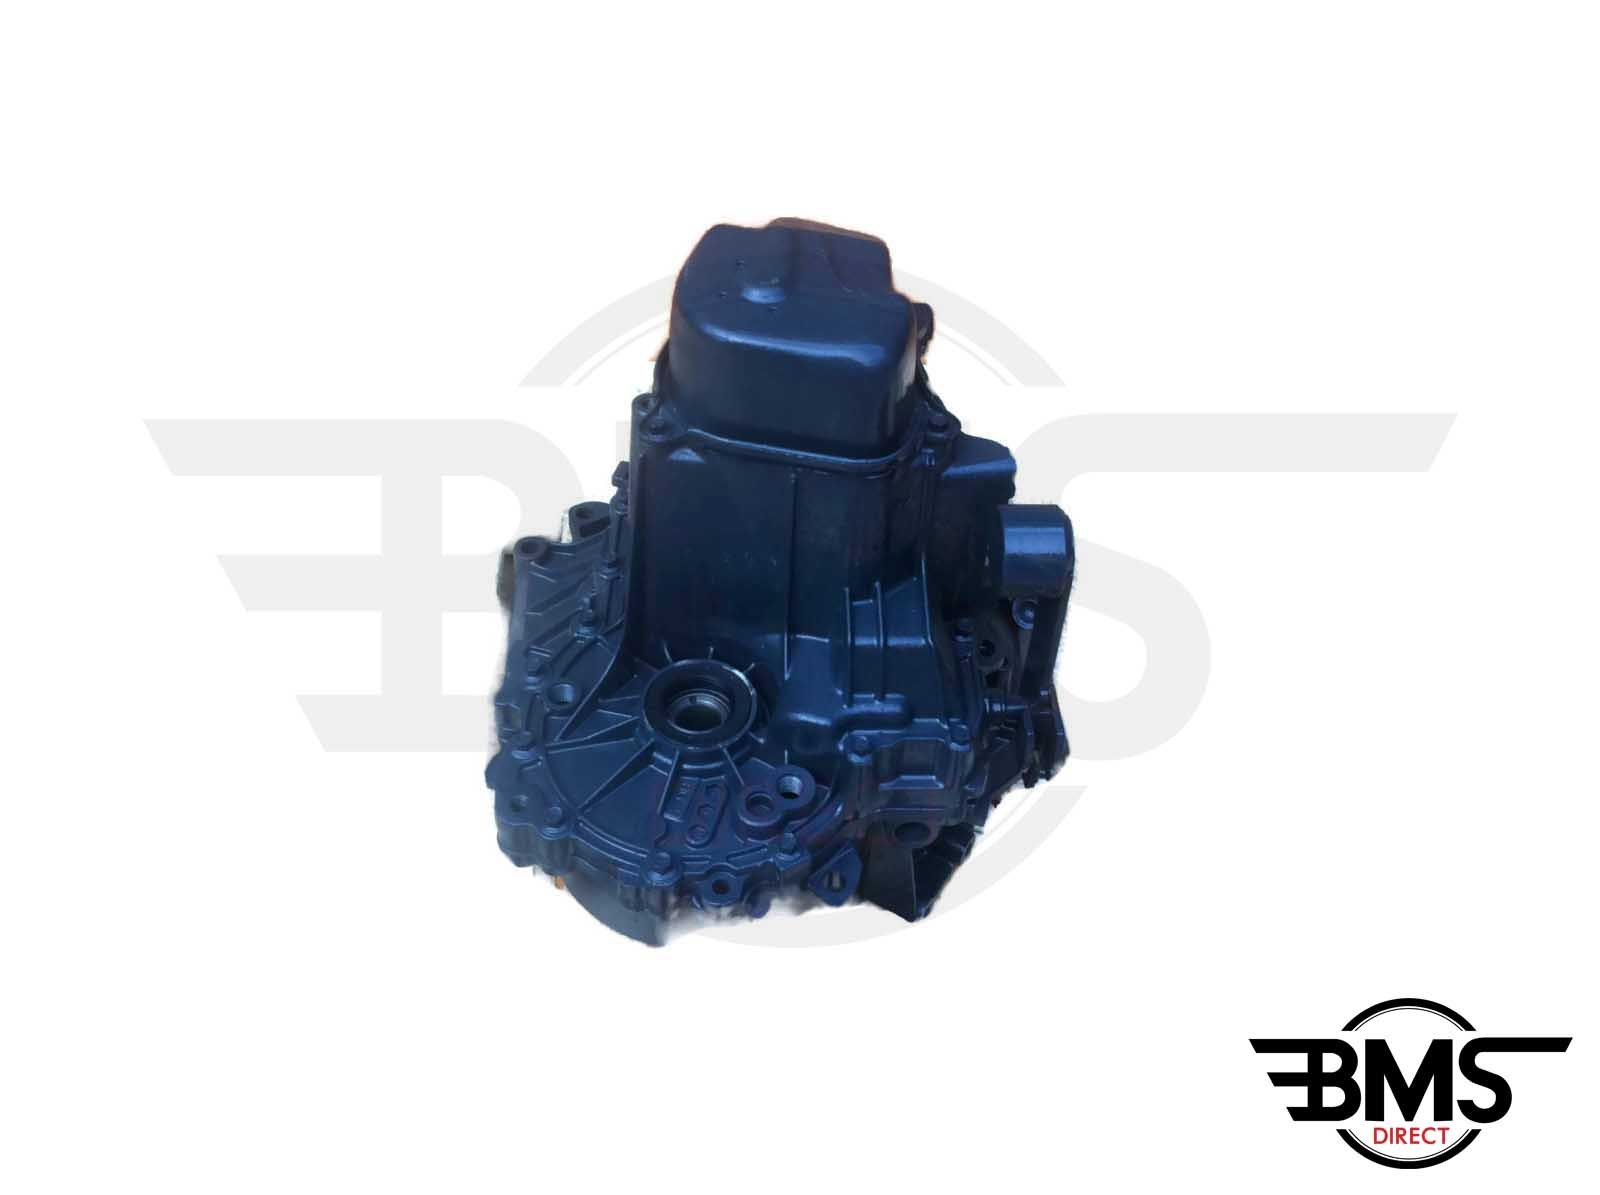 Fully Reconditioned Midland 5 Speed Gearbox R50 Bms Direct Ltd